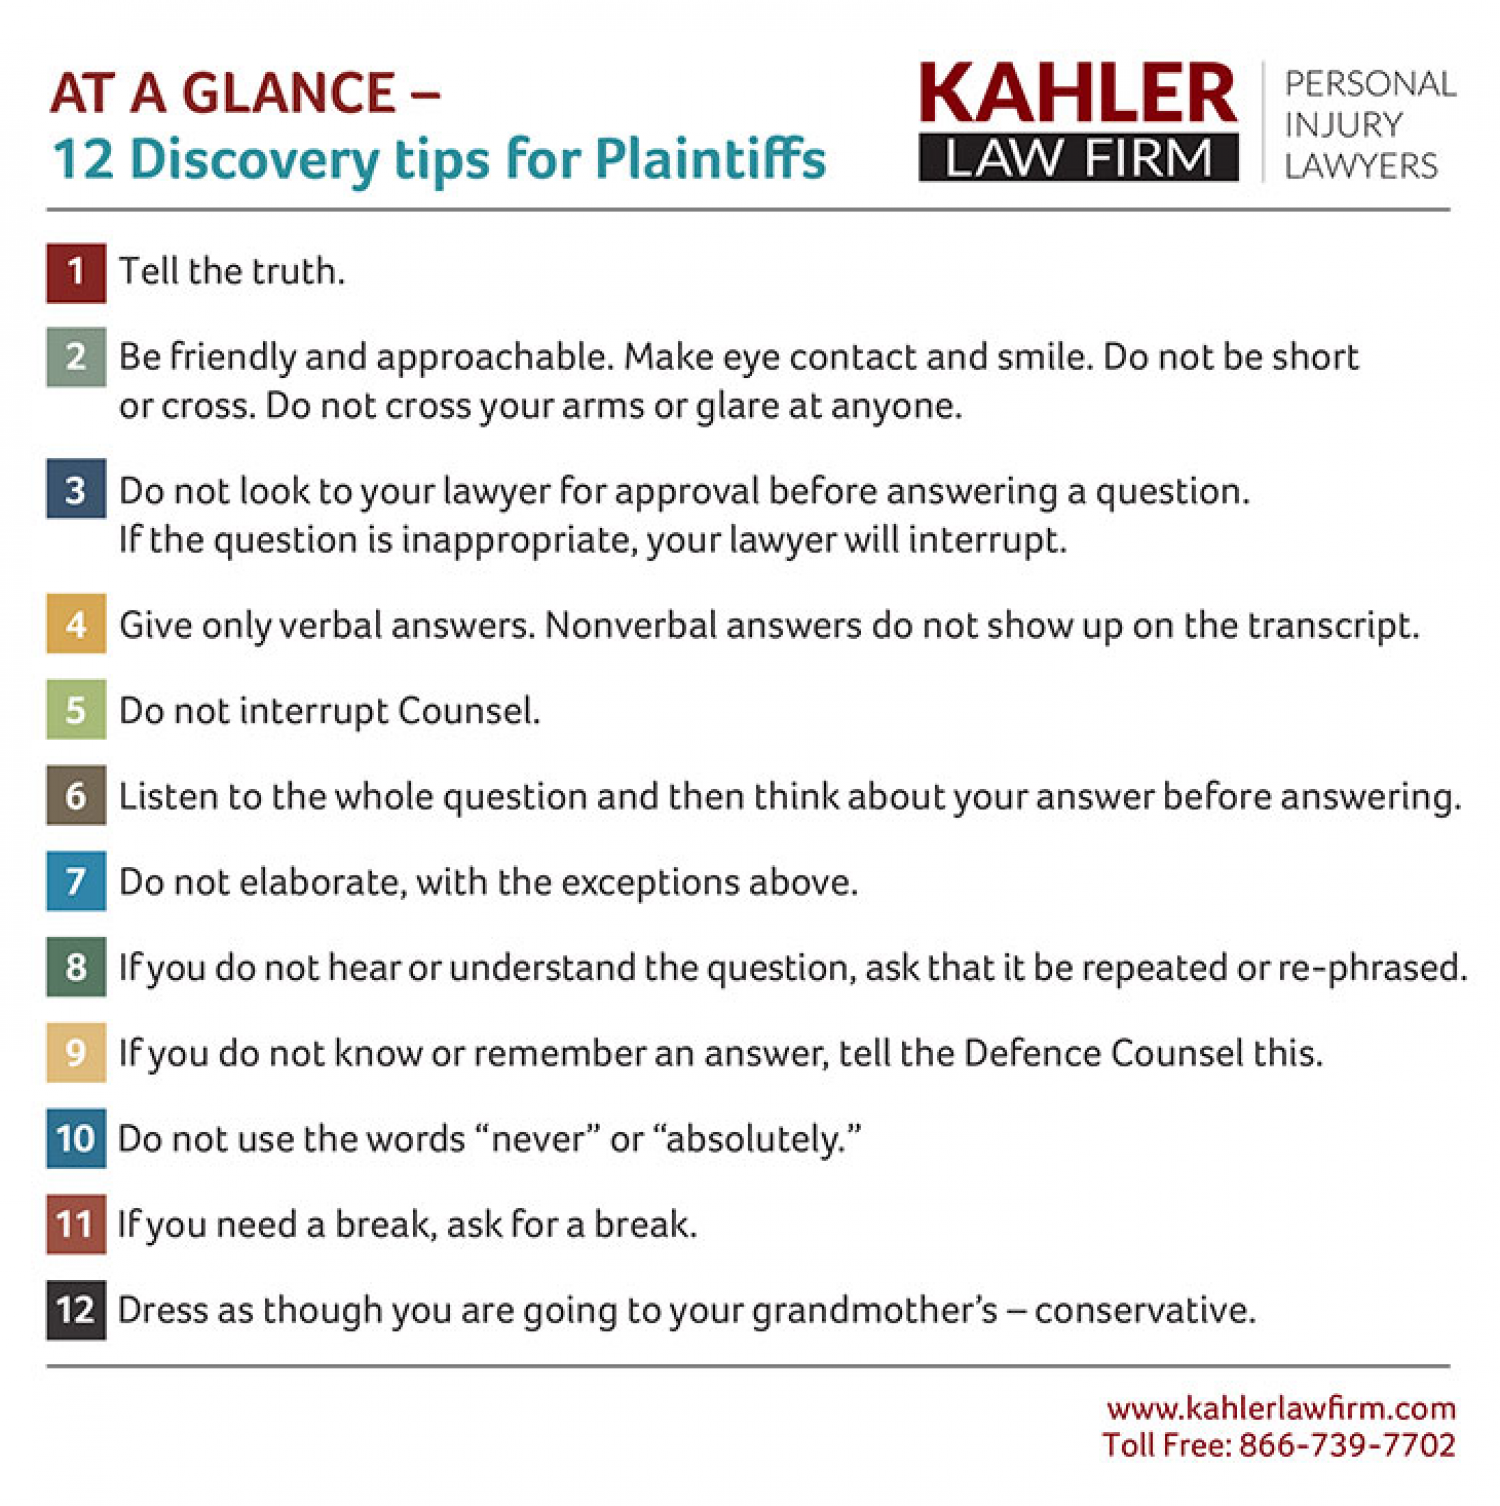 At A Glance – Personal Injury Discovery tips for Plaintiffs Infographic